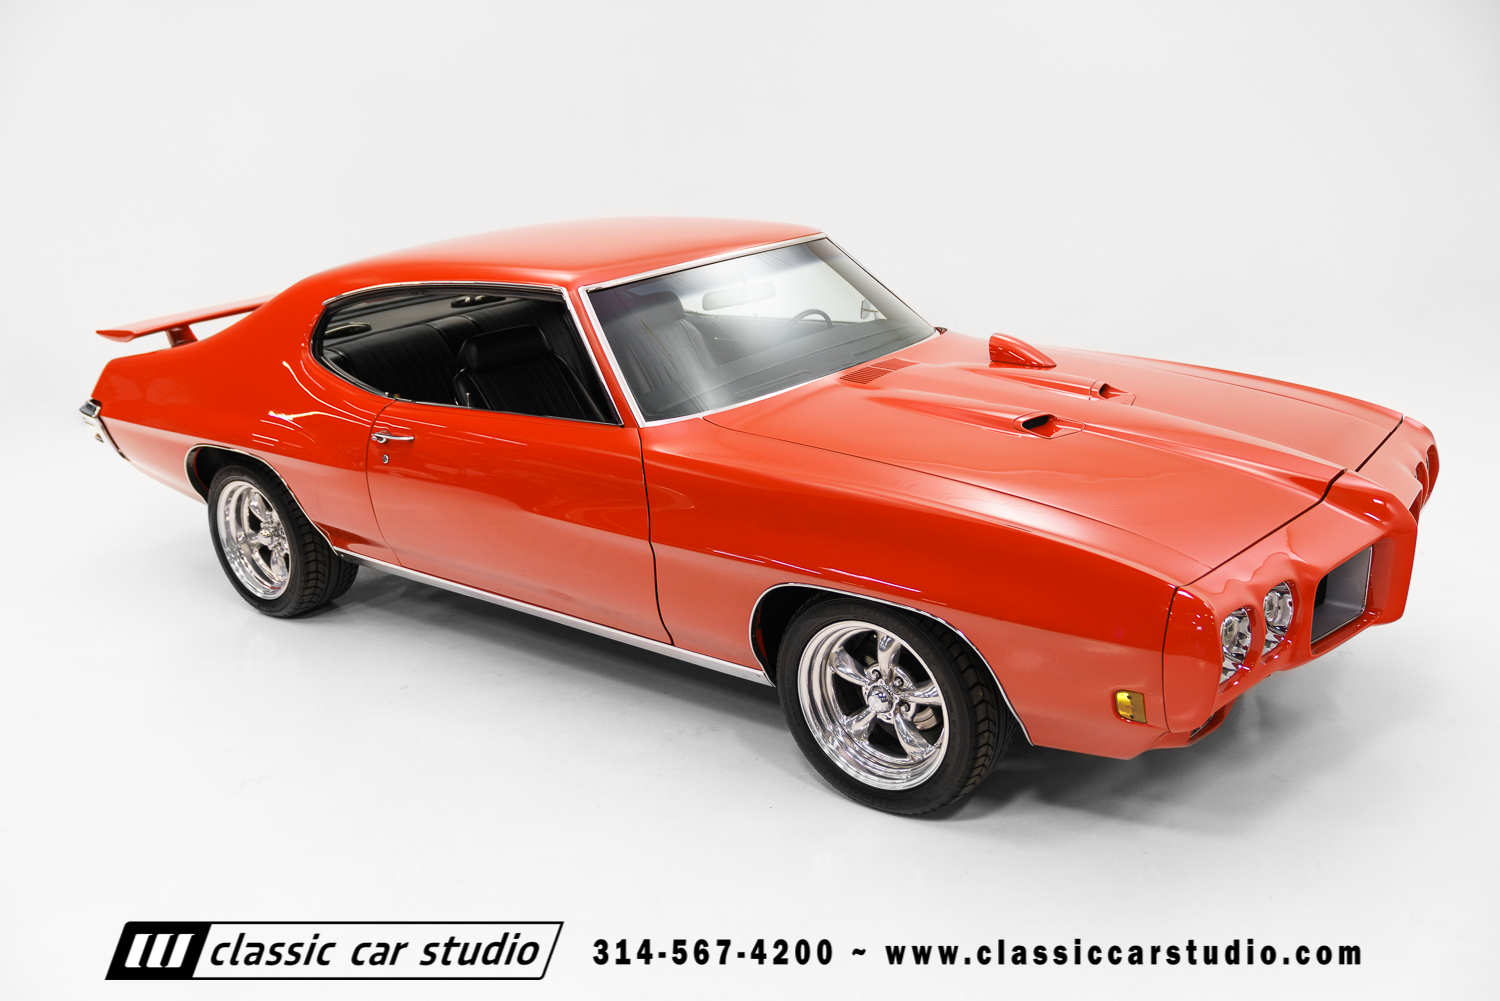 1970 pontiac gto classic car studio. Black Bedroom Furniture Sets. Home Design Ideas